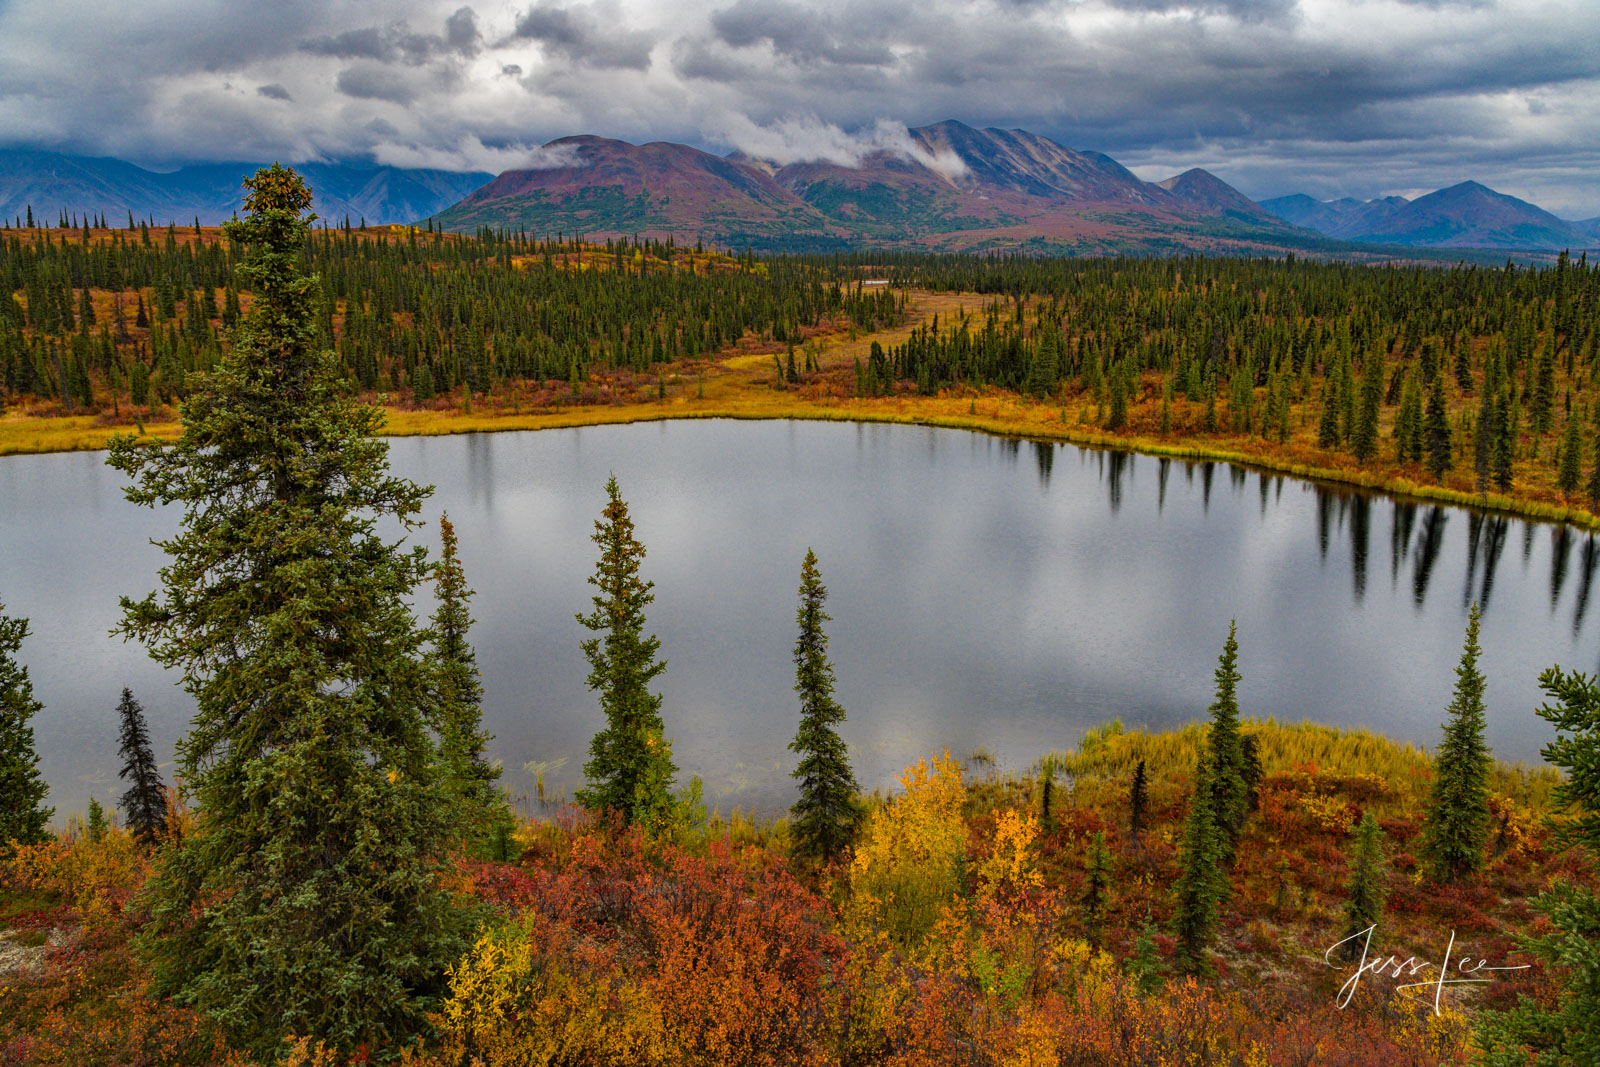 Mountain Photography, Alaska, Mountains, autumn, fall, color, lake, tundra, beautiful, fine art, limited edition, print, Denali, jess lee, artist, western, cowboy, photographer, high quality, high re,, photo